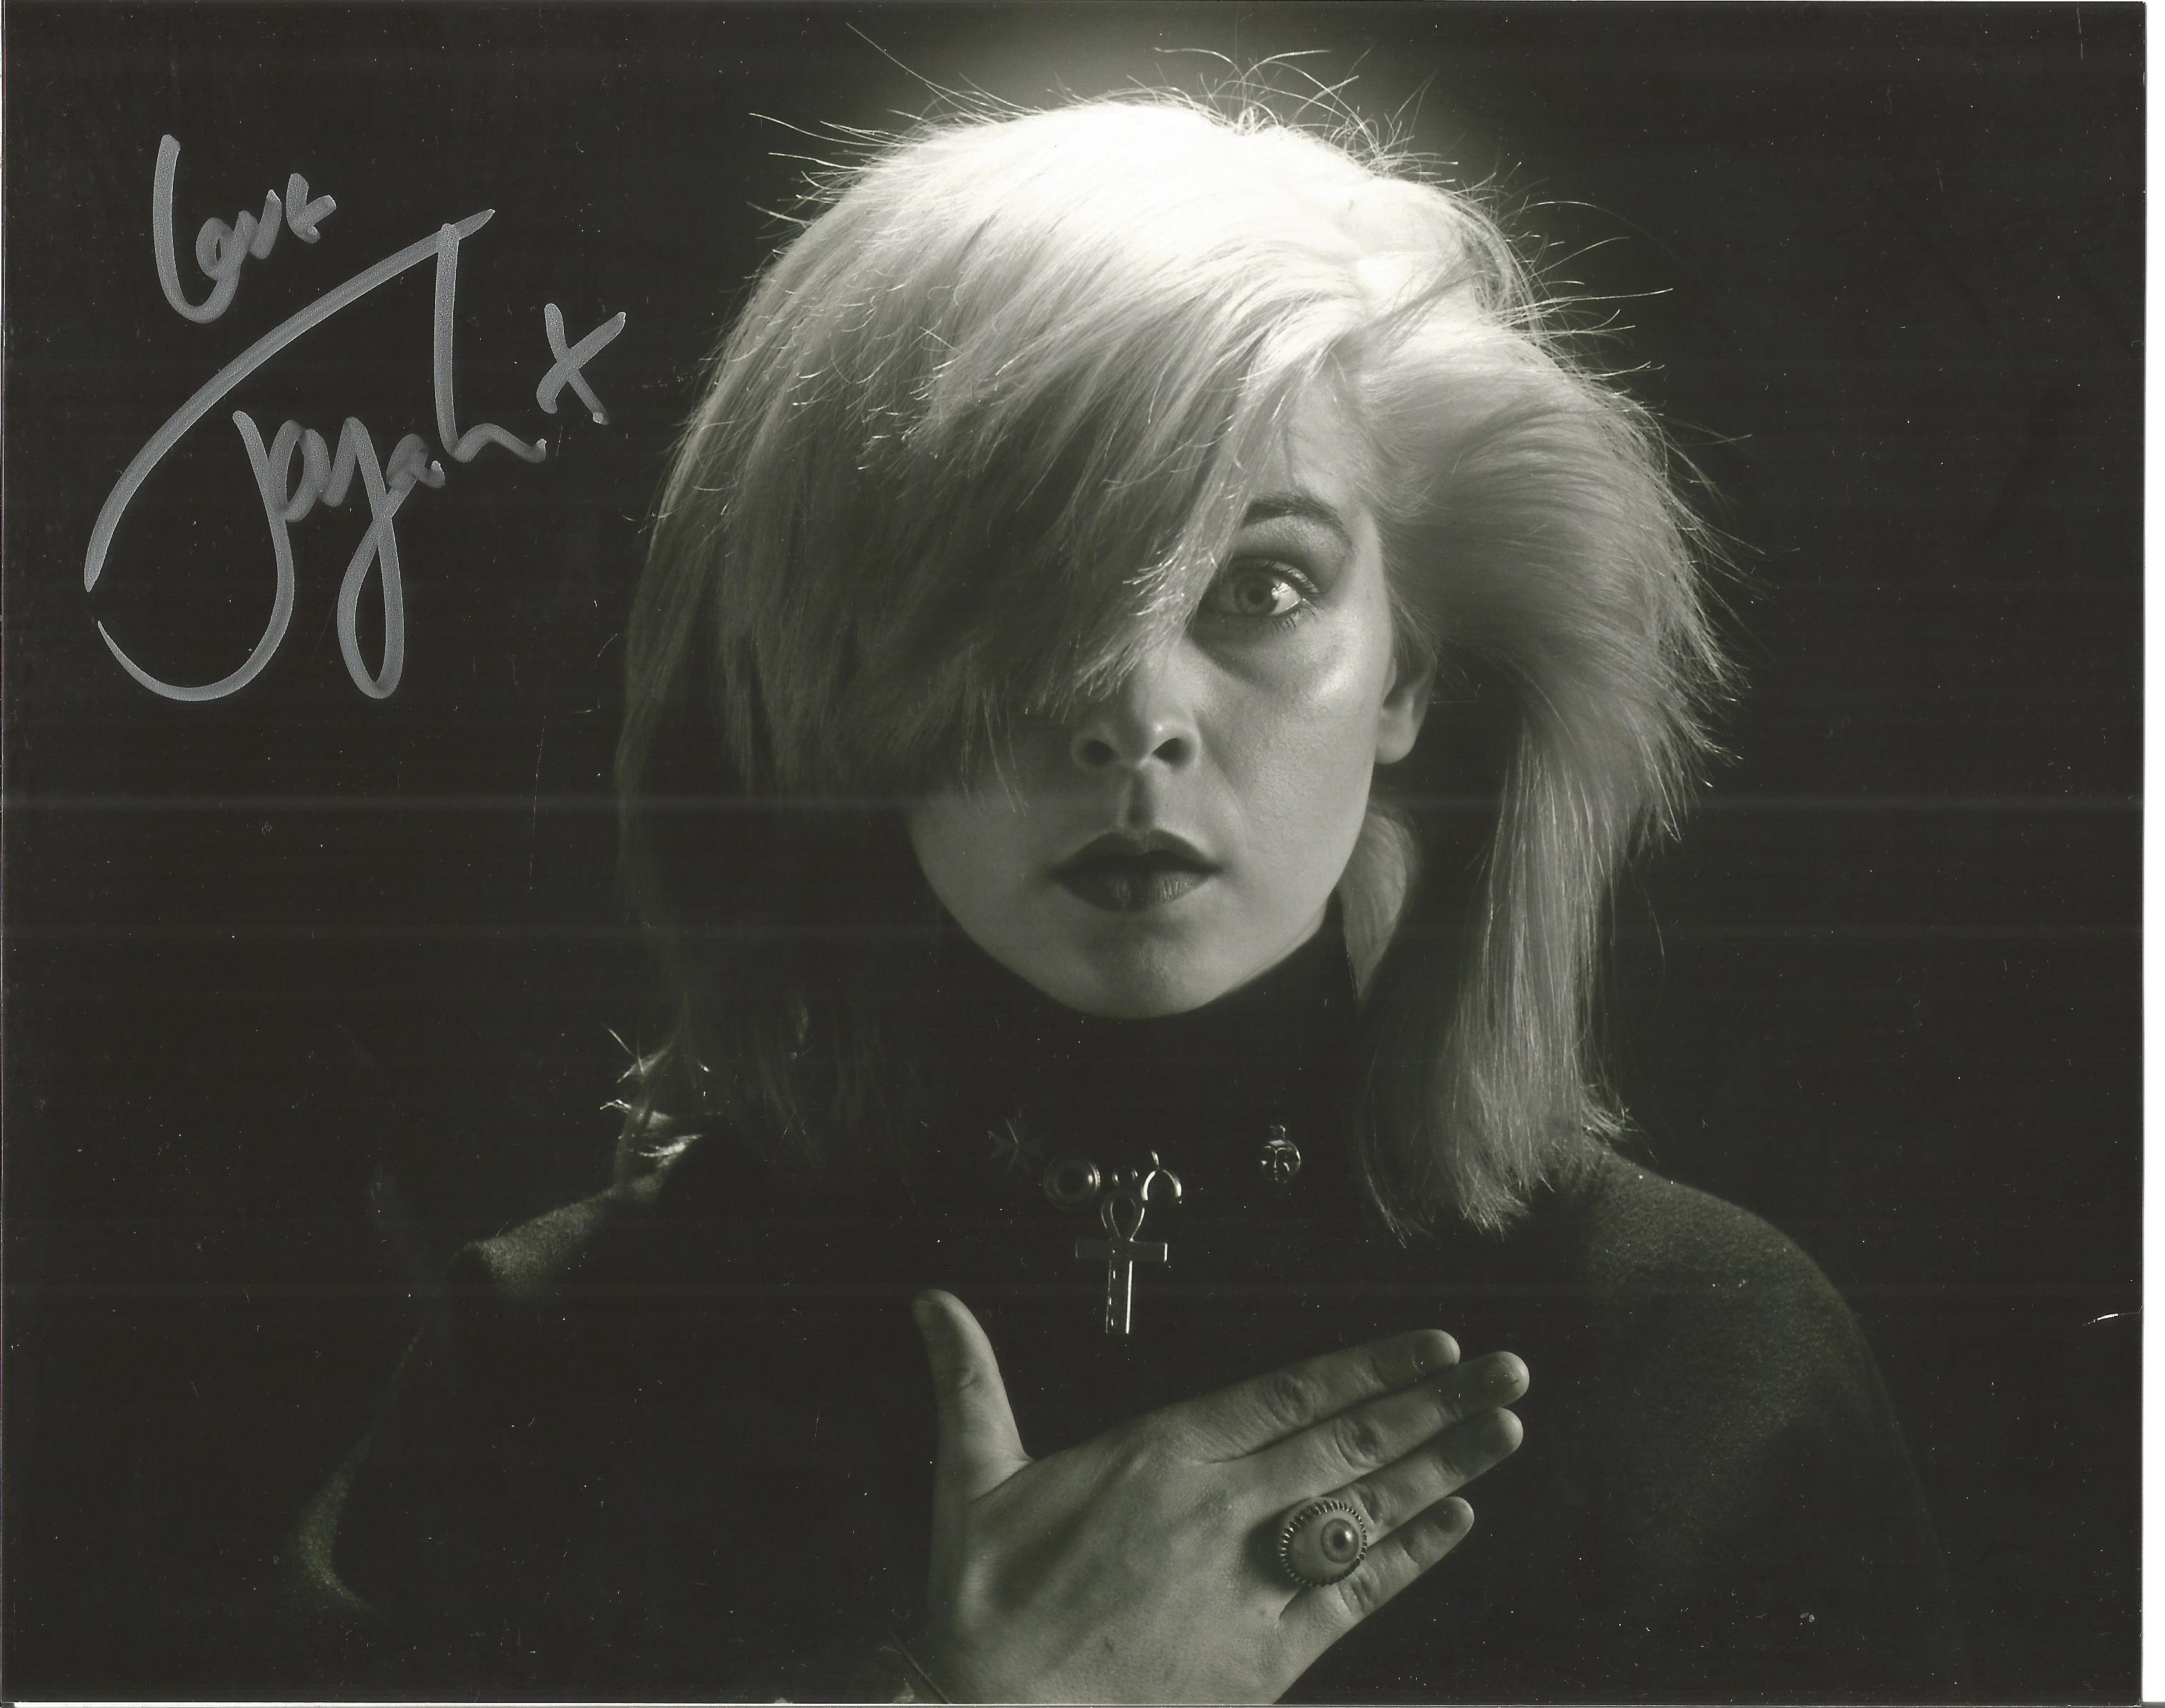 Toyah Wilcox signed 10x8 black and white image. Toyah is a English musician, actress and